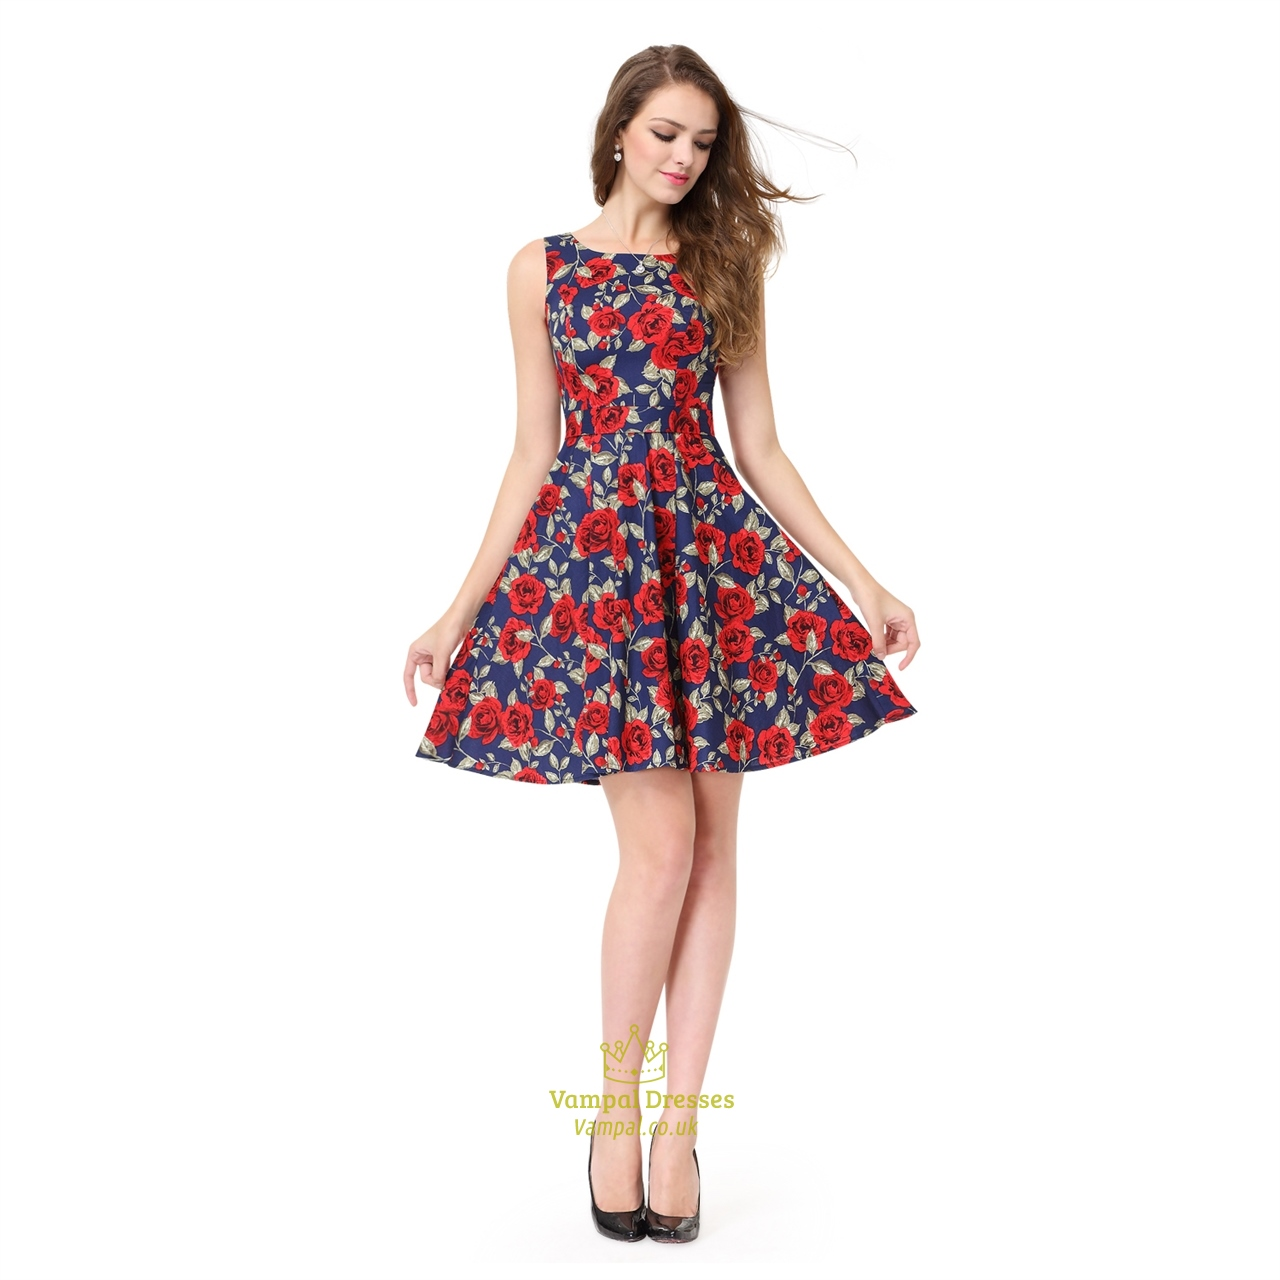 Popular skater dress of Good Quality and at Affordable Prices You can Buy on AliExpress. We believe in helping you find the product that is right for you.